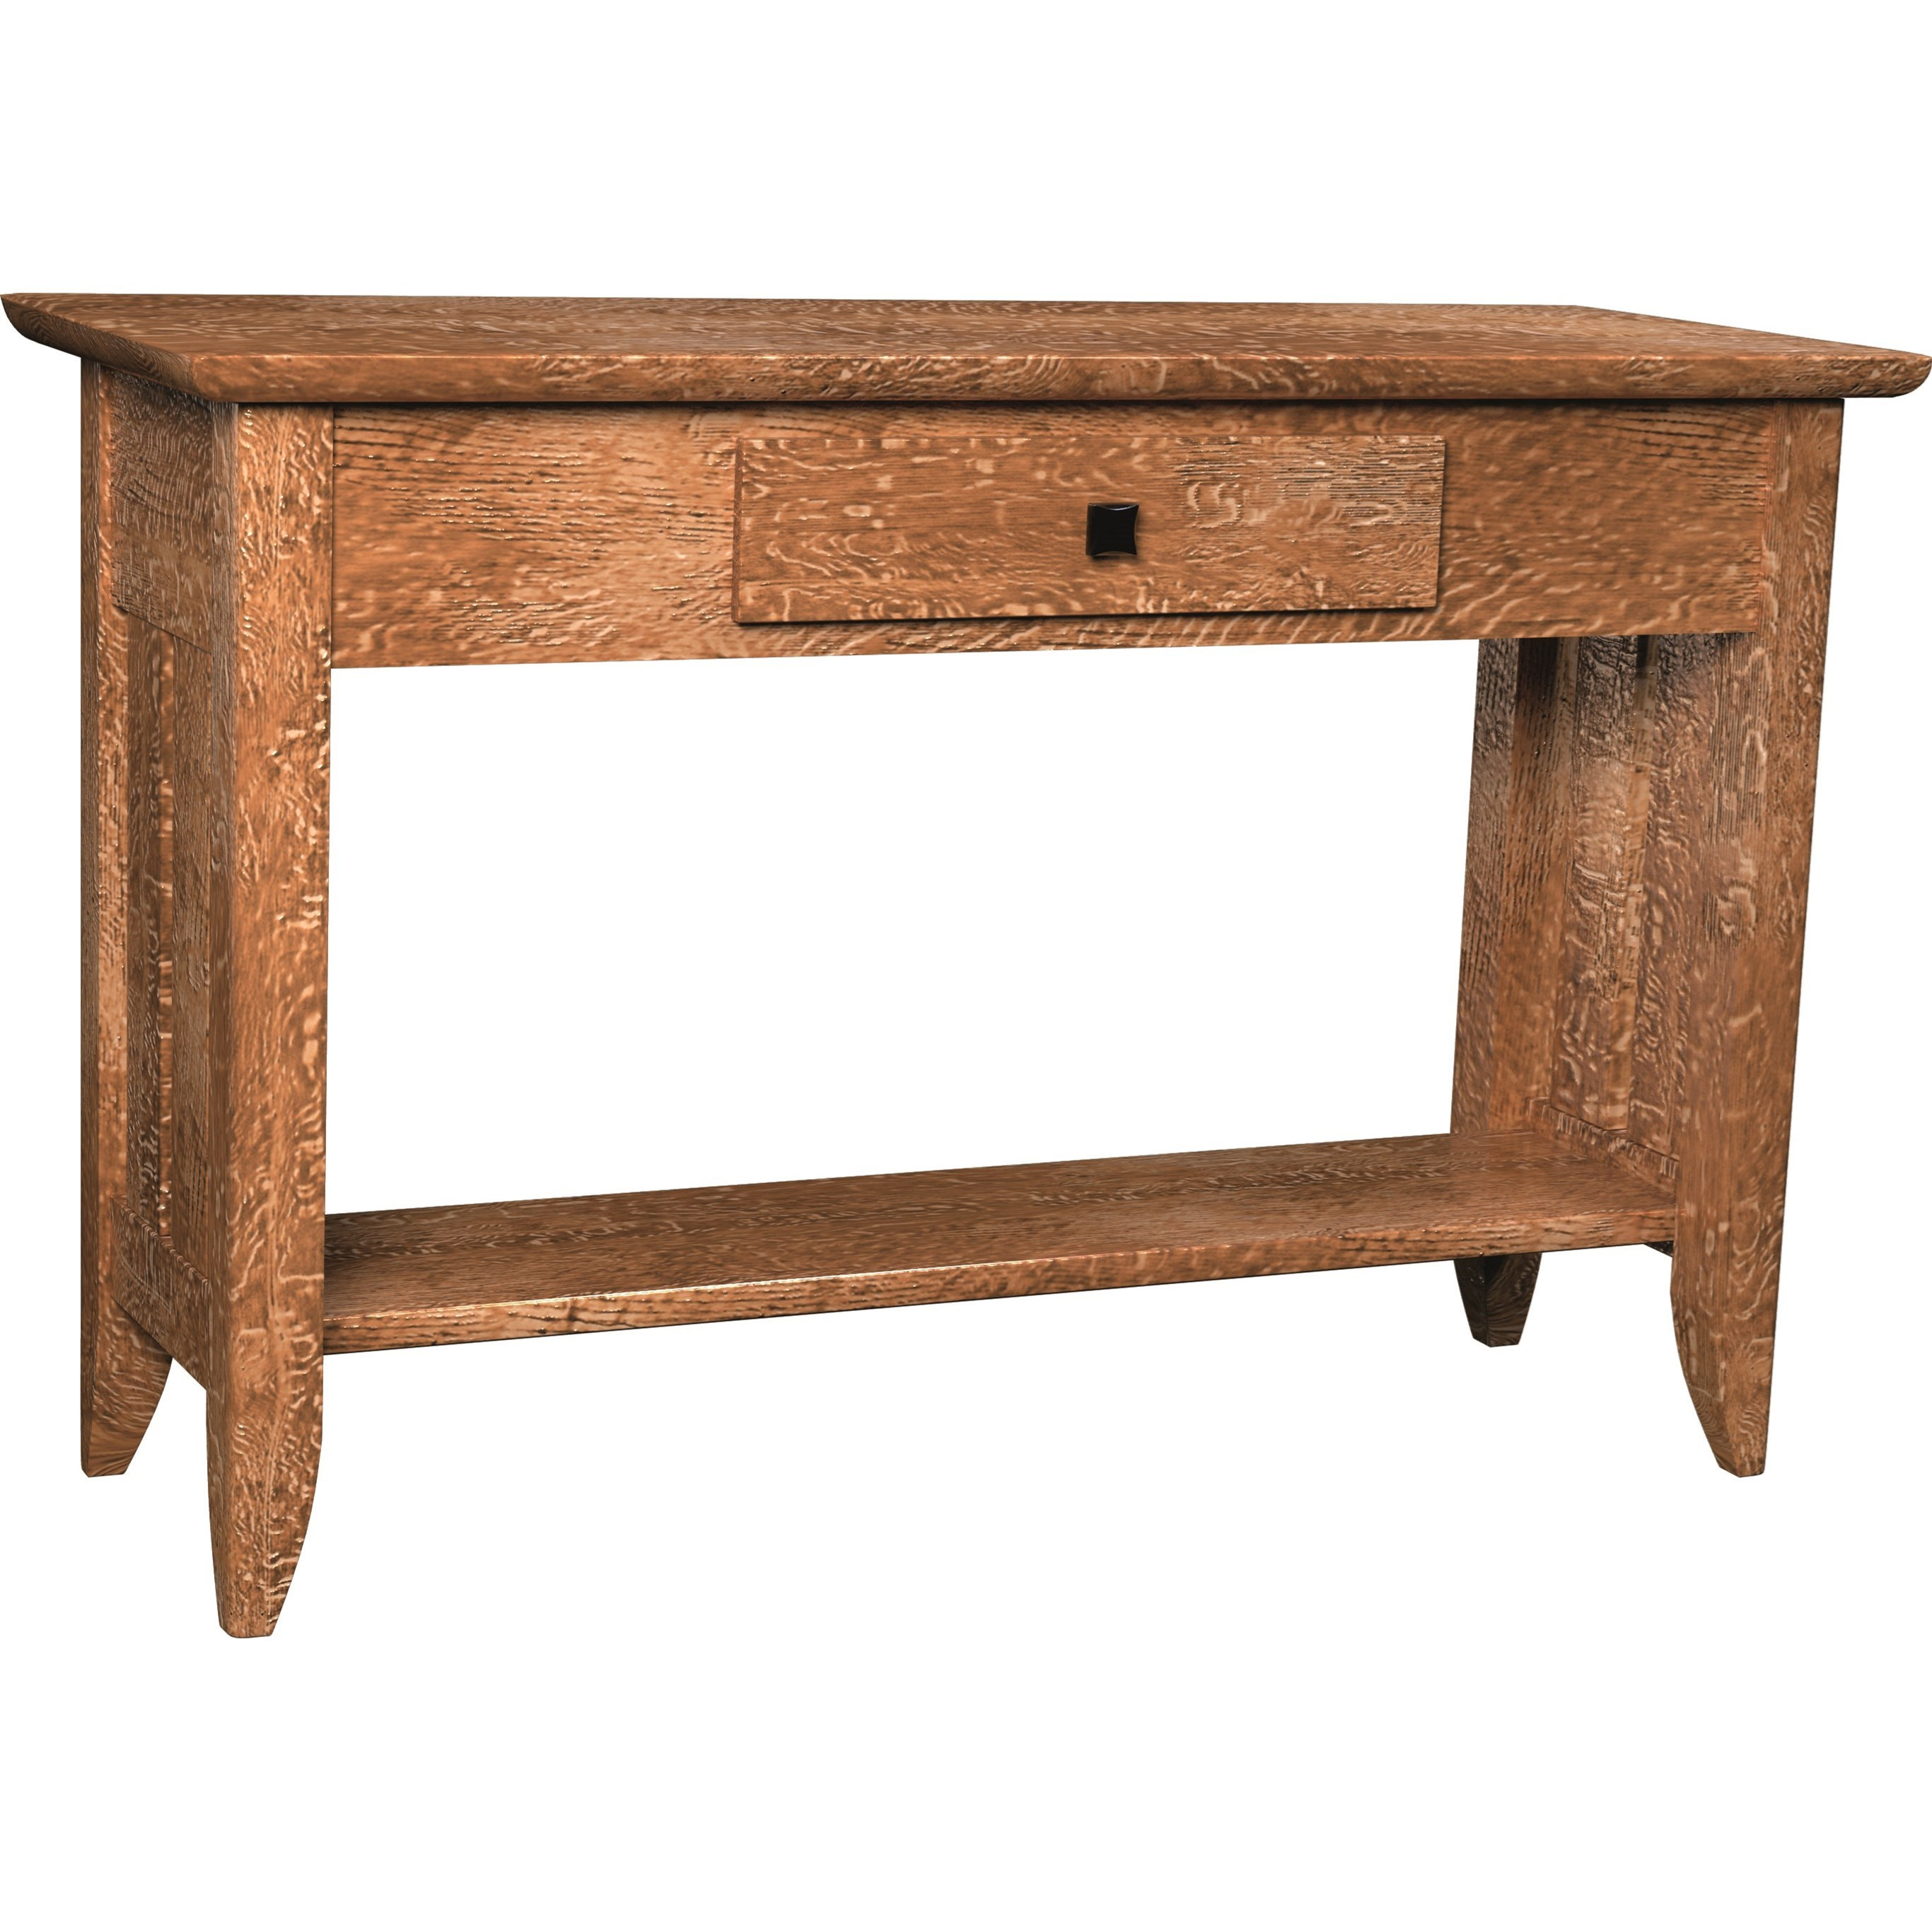 Austin w/ Slats Sofa Table by Ashery Woodworking at Saugerties Furniture Mart